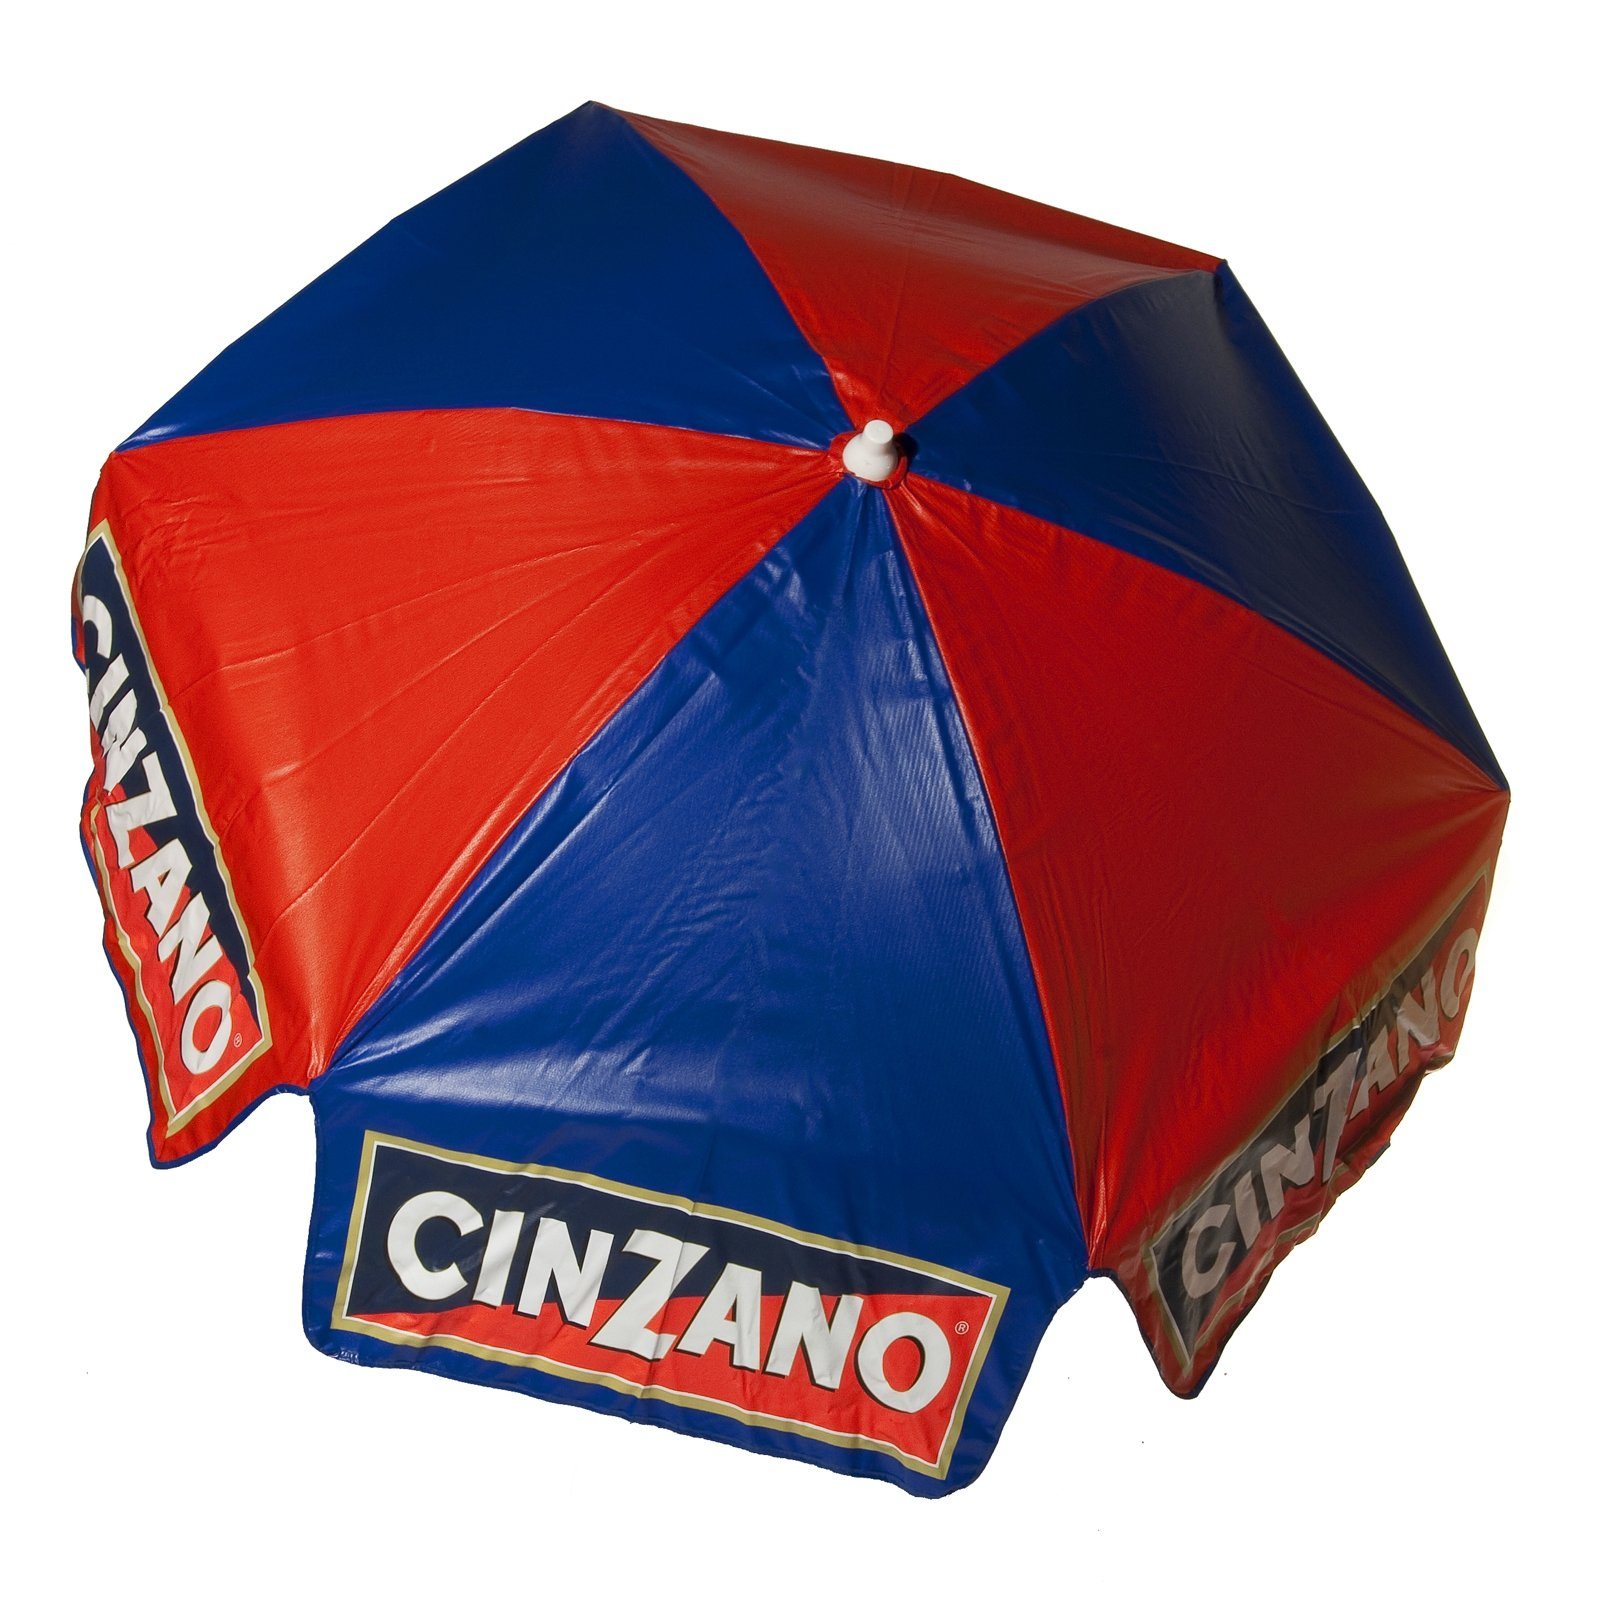 6ft Licensed Cinzano Tilt Outdoor Market Umbrella Home Canopy Patio Pole